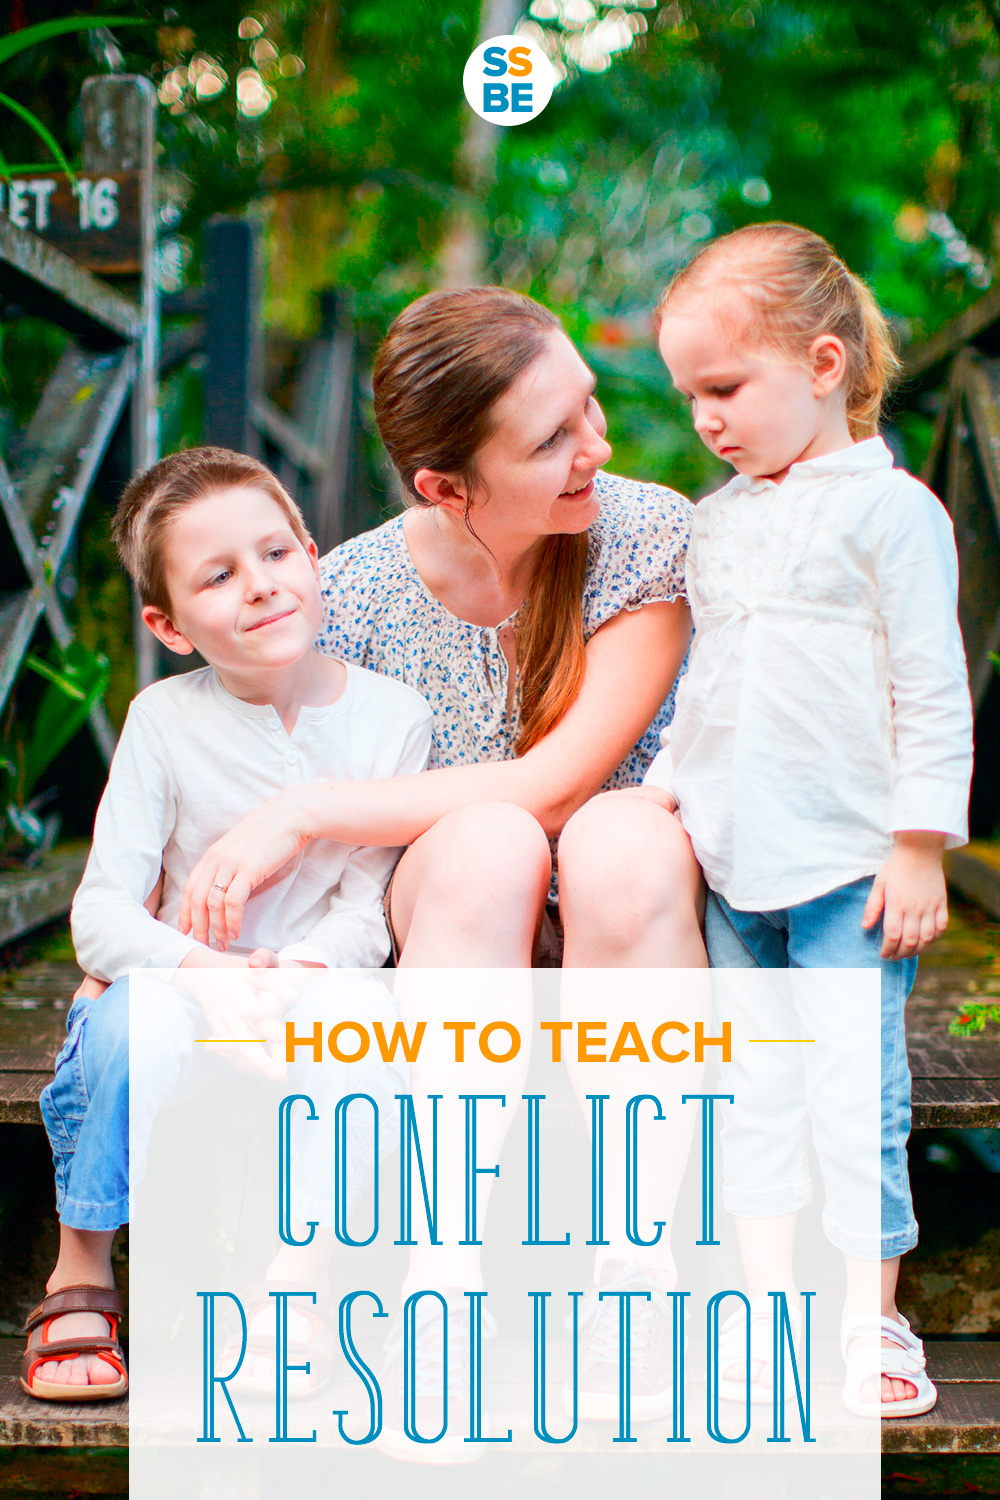 Tired of the constant squabbles between your kids? Learn how to deal with sibling rivalry and teach conflict resolution for kids instead.